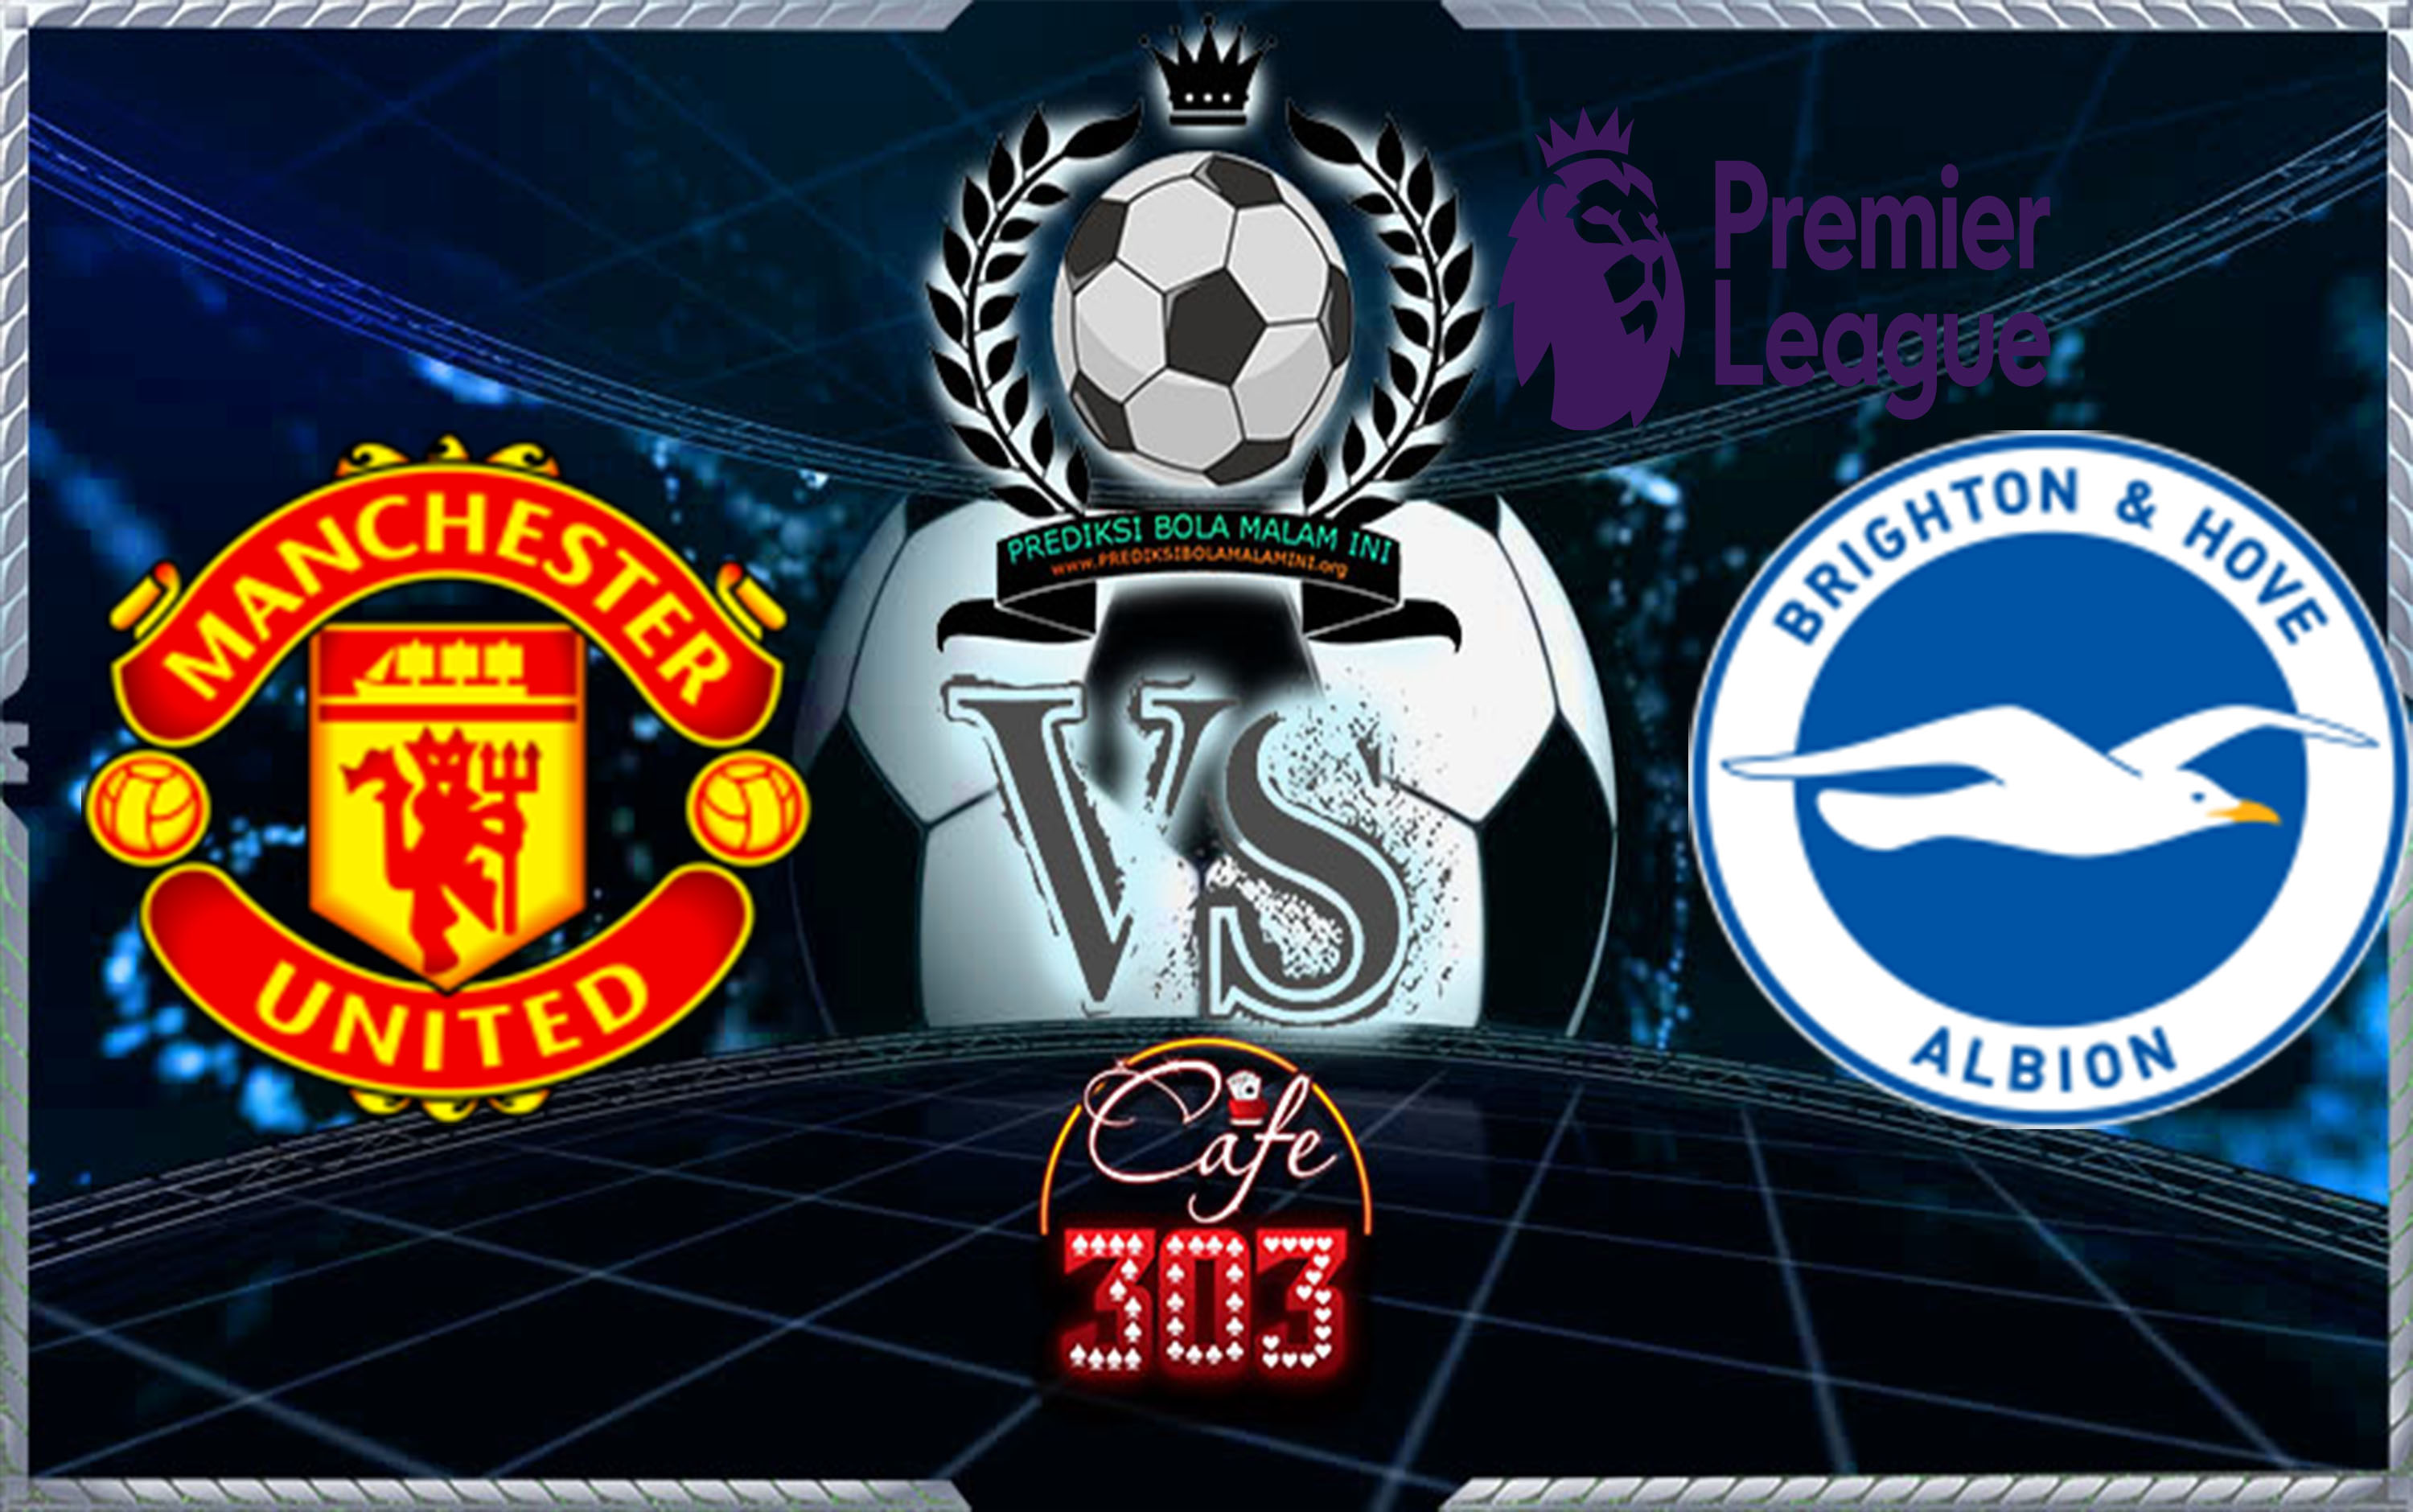 Prediksi Sepatu MANCHESTER UNITED Vs BRIGHTON &amp; HOVE ALBION 25 November 2017 &quot;width =&quot; 640 &quot;height =&quot; 401 &quot;/&gt; </p> <p> <span style=